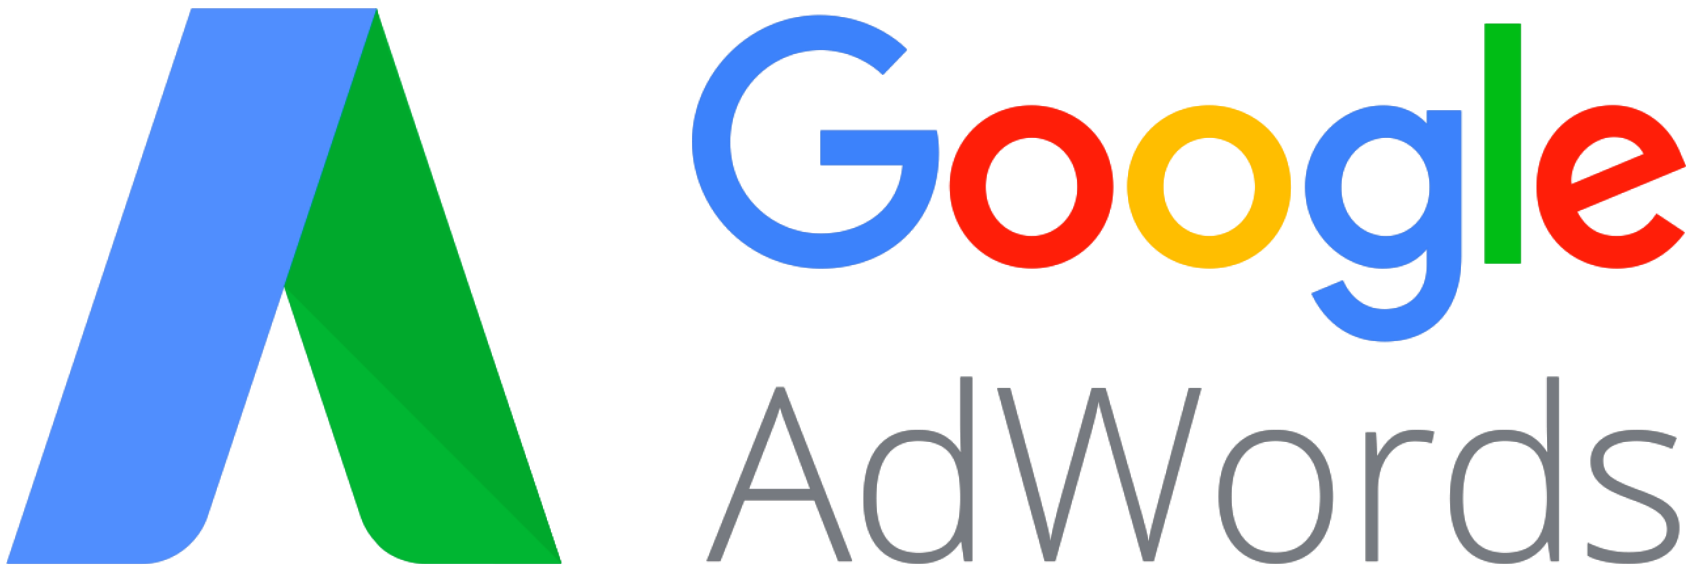 Google AdWords Google Ad Grants and Google Ads